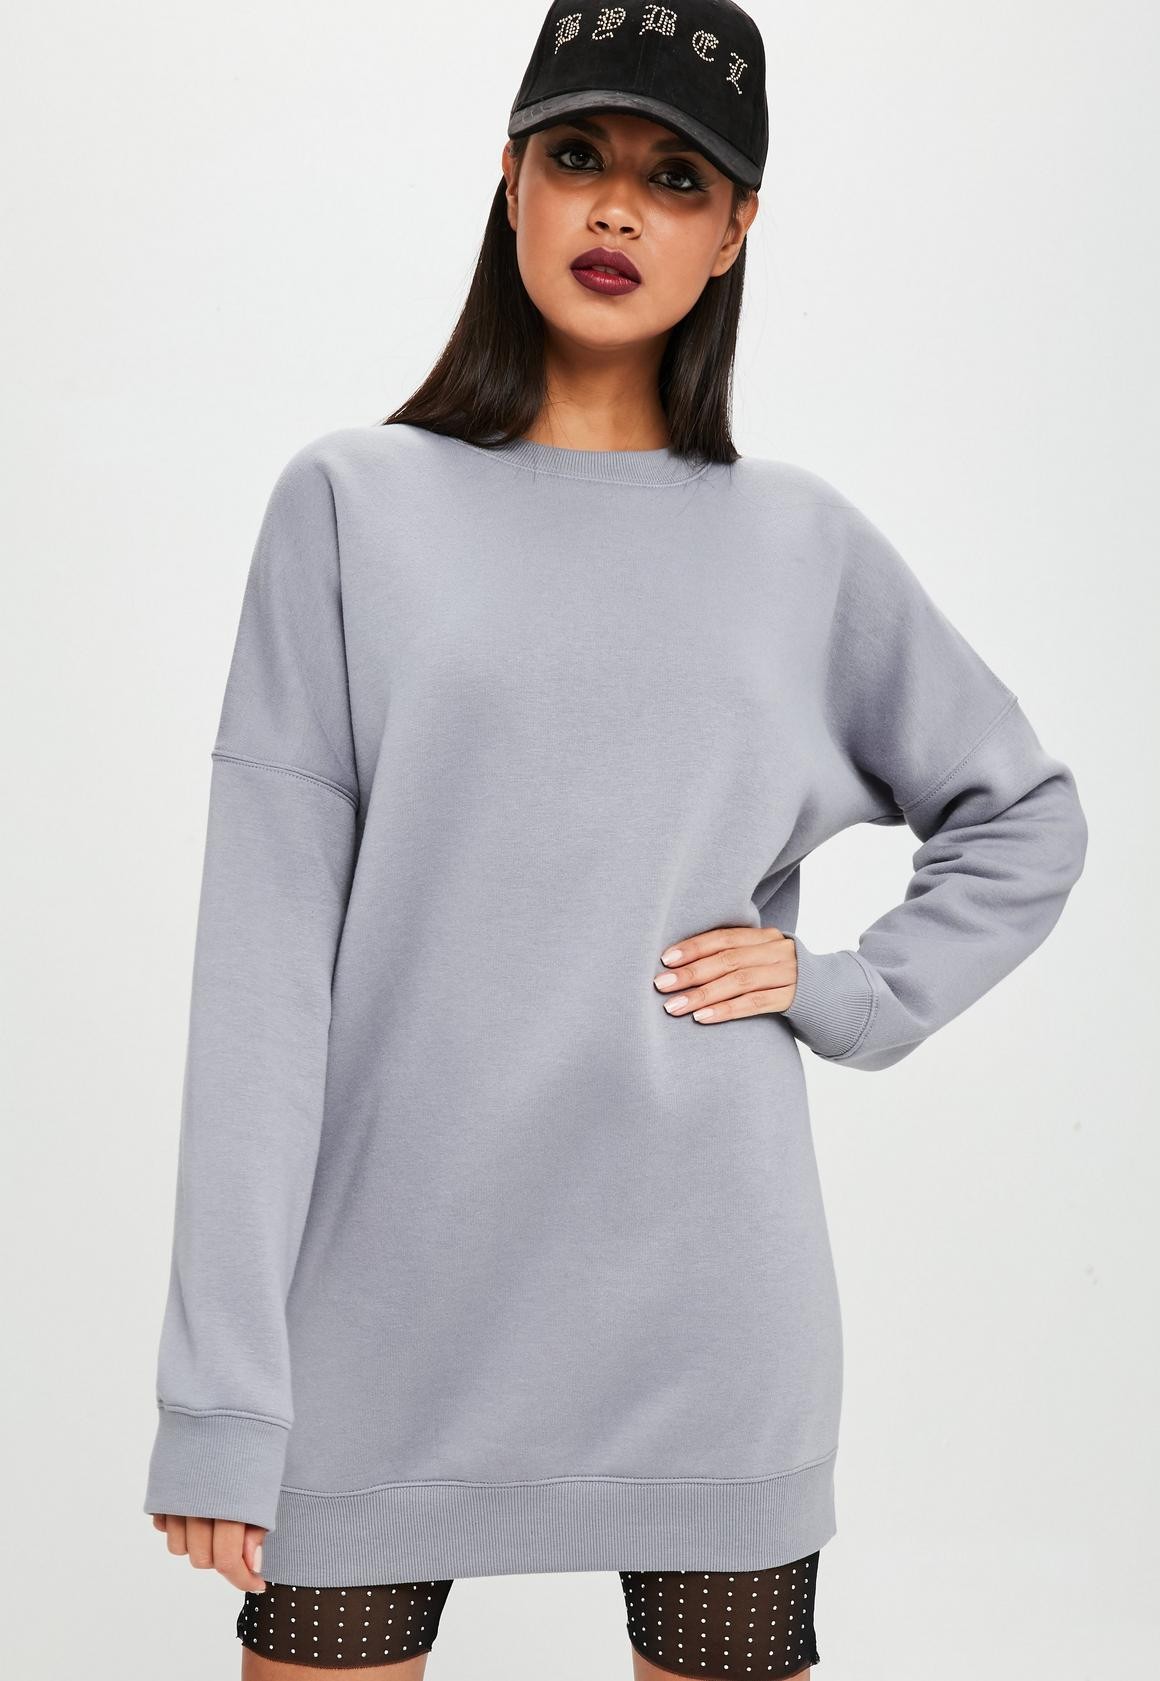 Carli Bybel x Missguided Grey Oversized Sweater Dress | Missguided ...